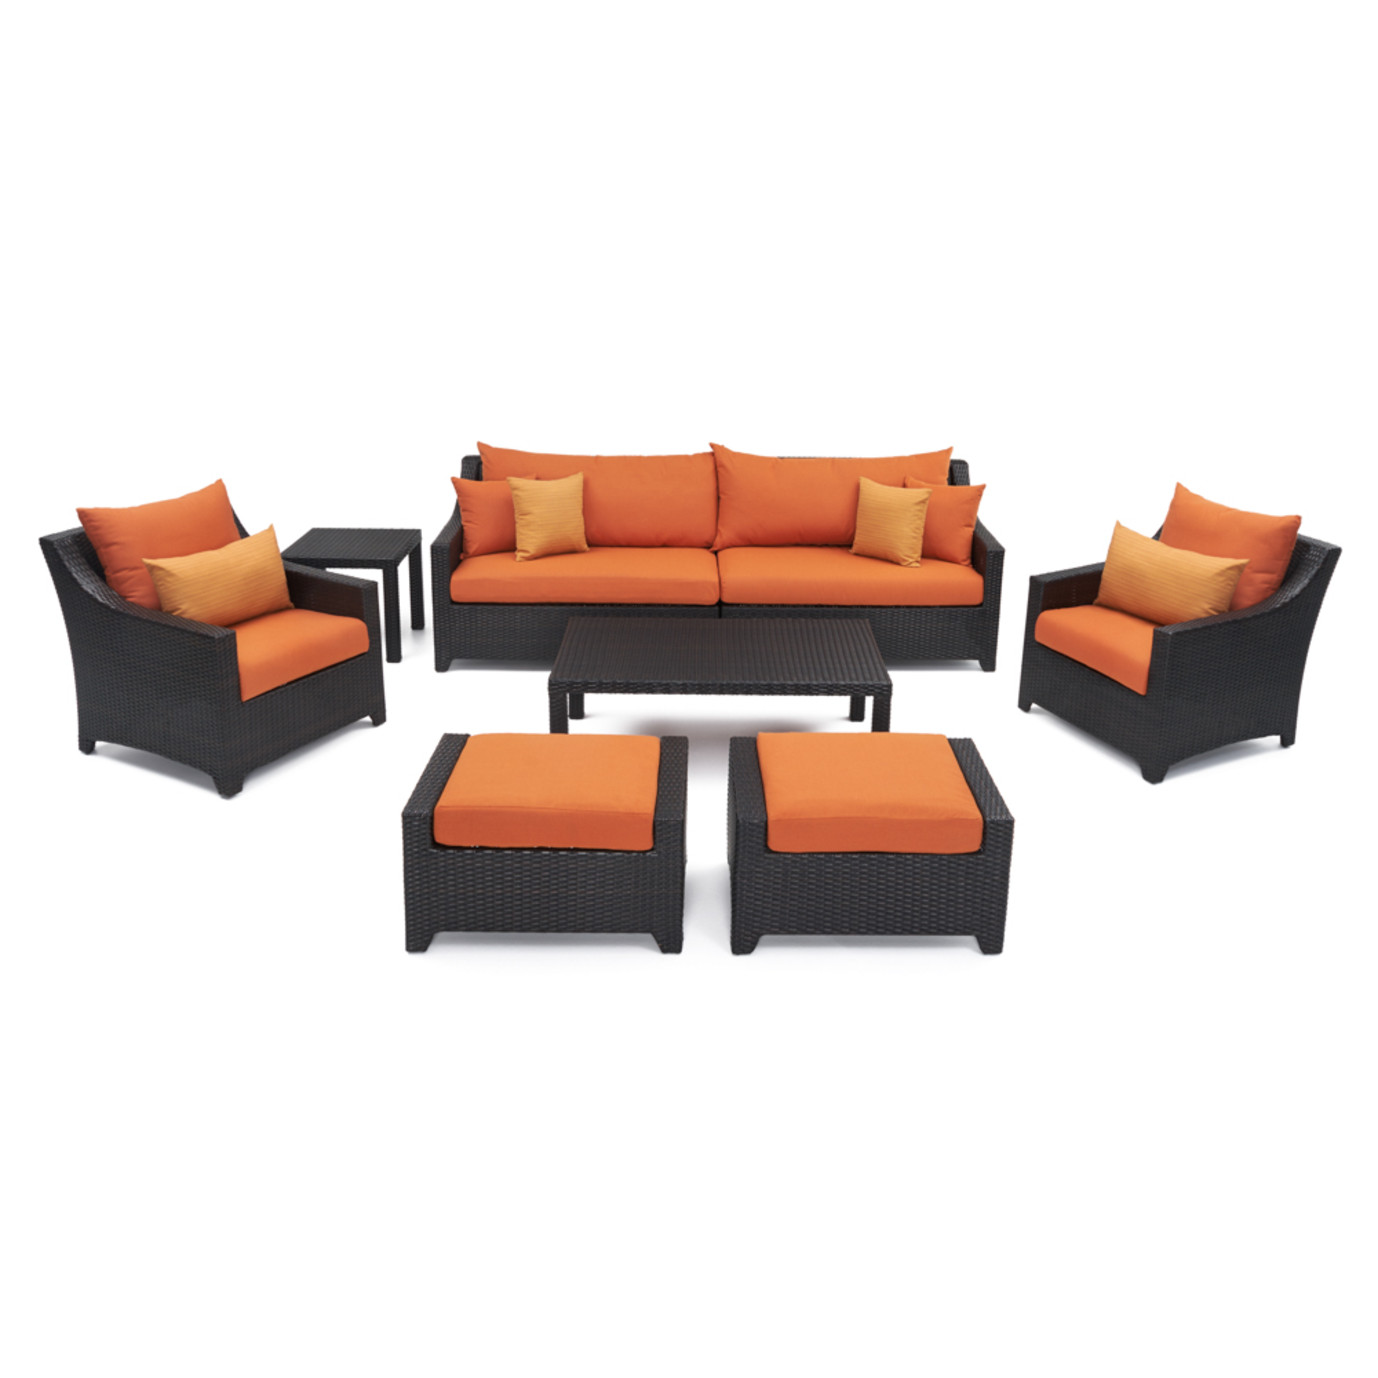 Deco™ 8 Piece Sofa and Club Chair Set - Tikka Orange